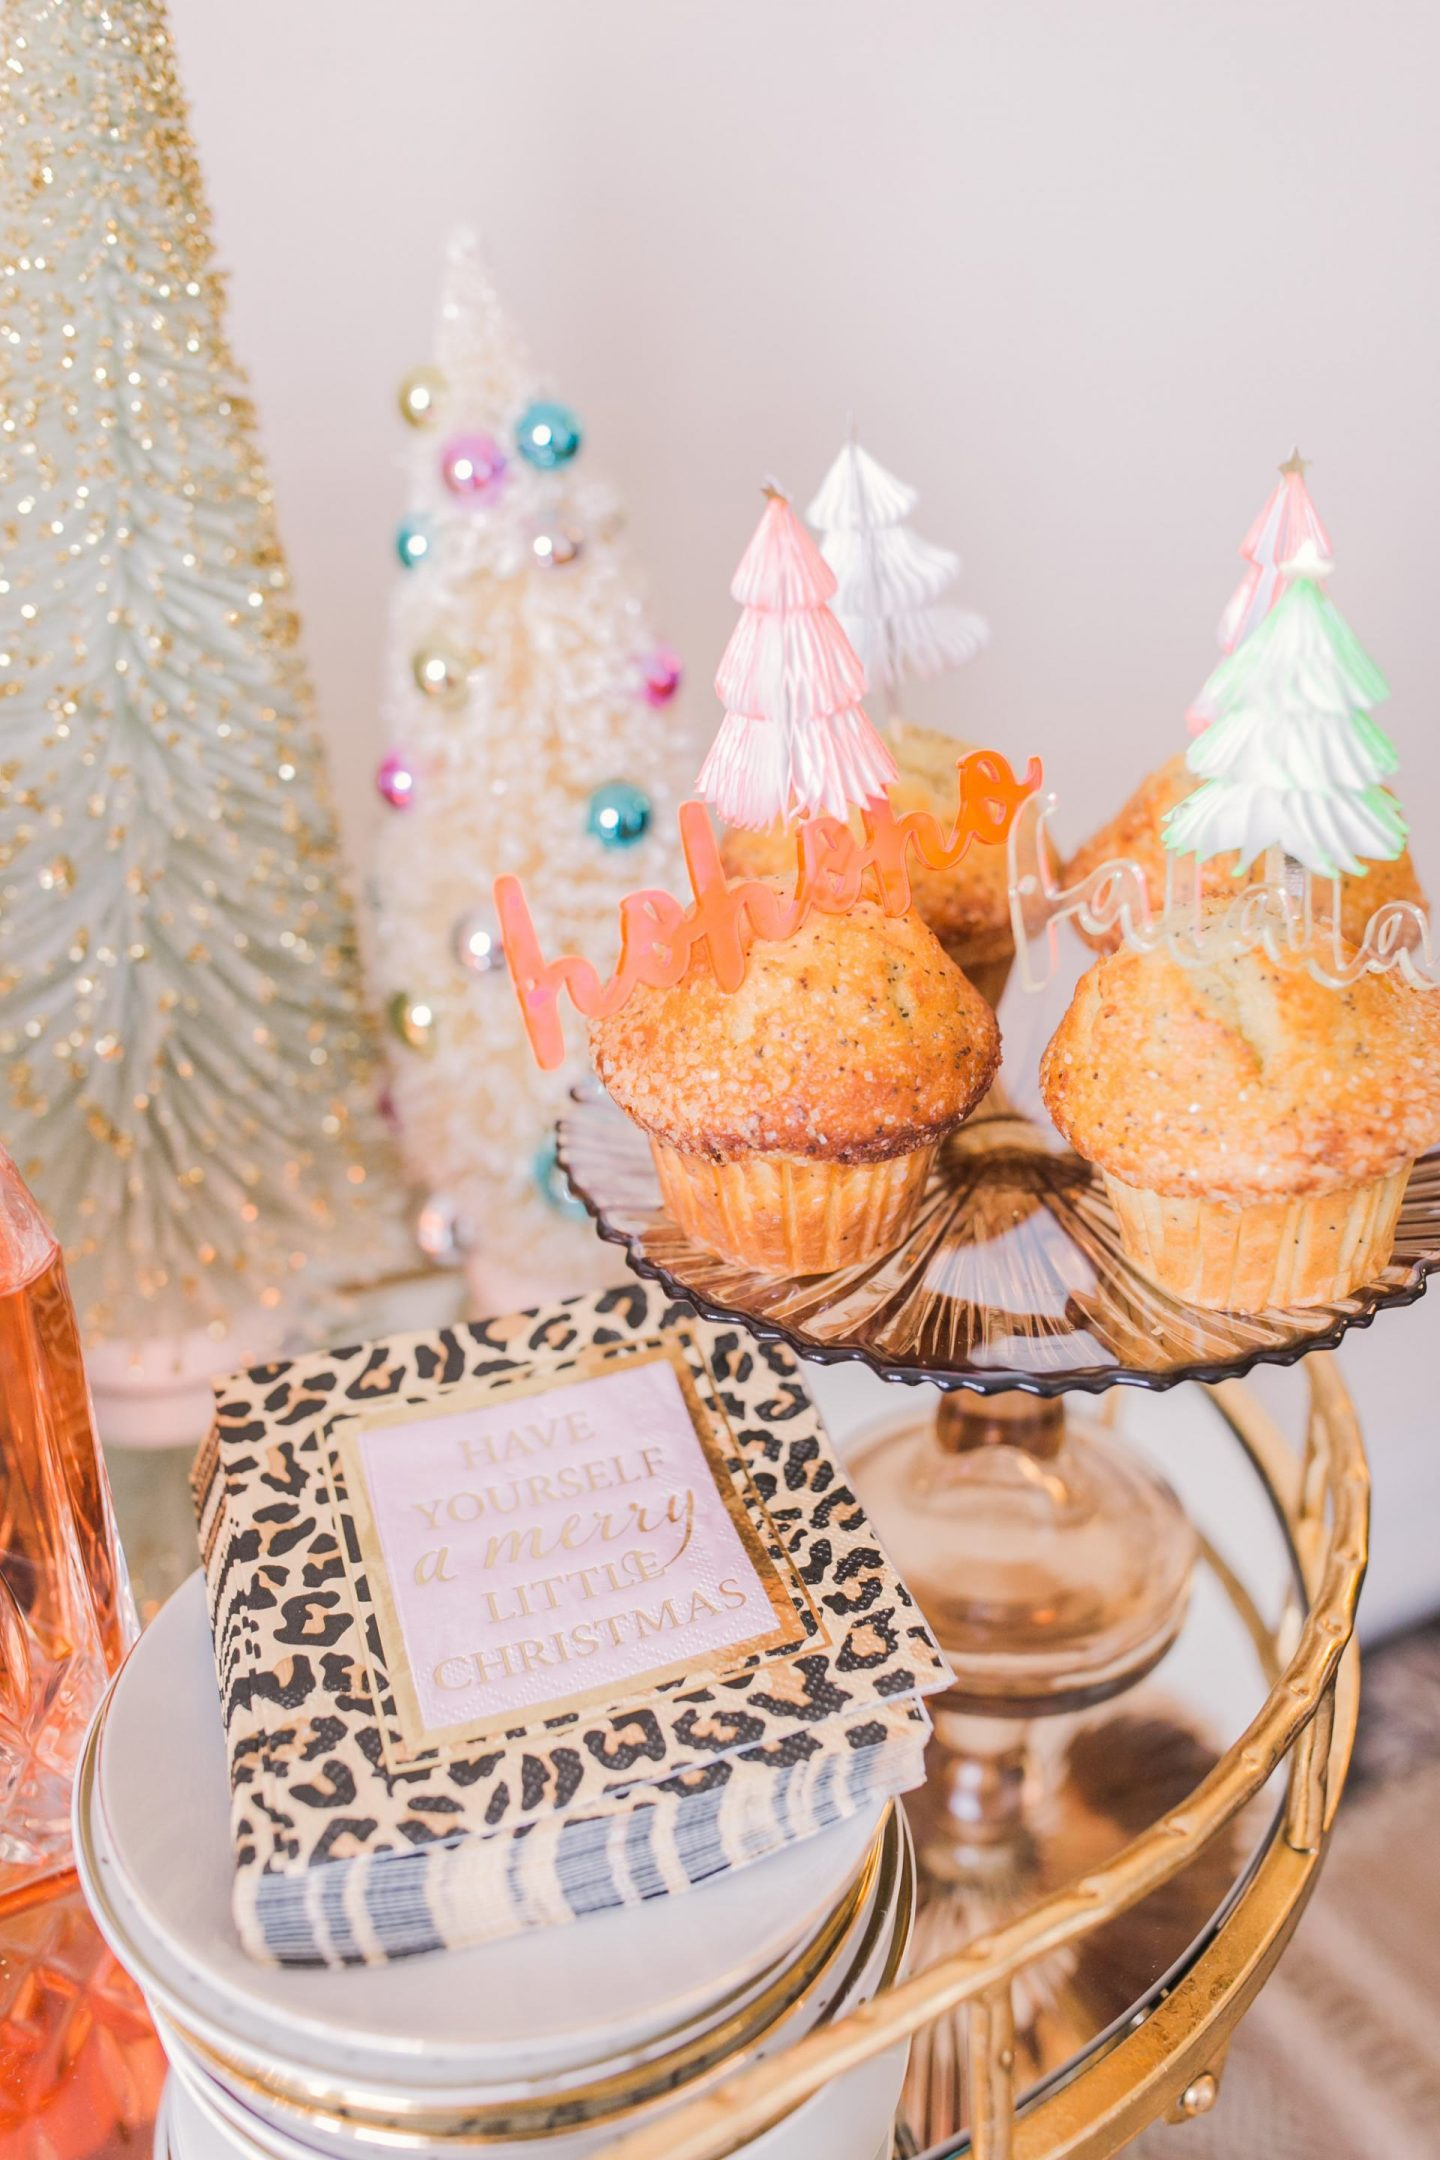 5 Easy Tips for Styling Your Holiday Bar Cart, Adding dessert - Bijuleni